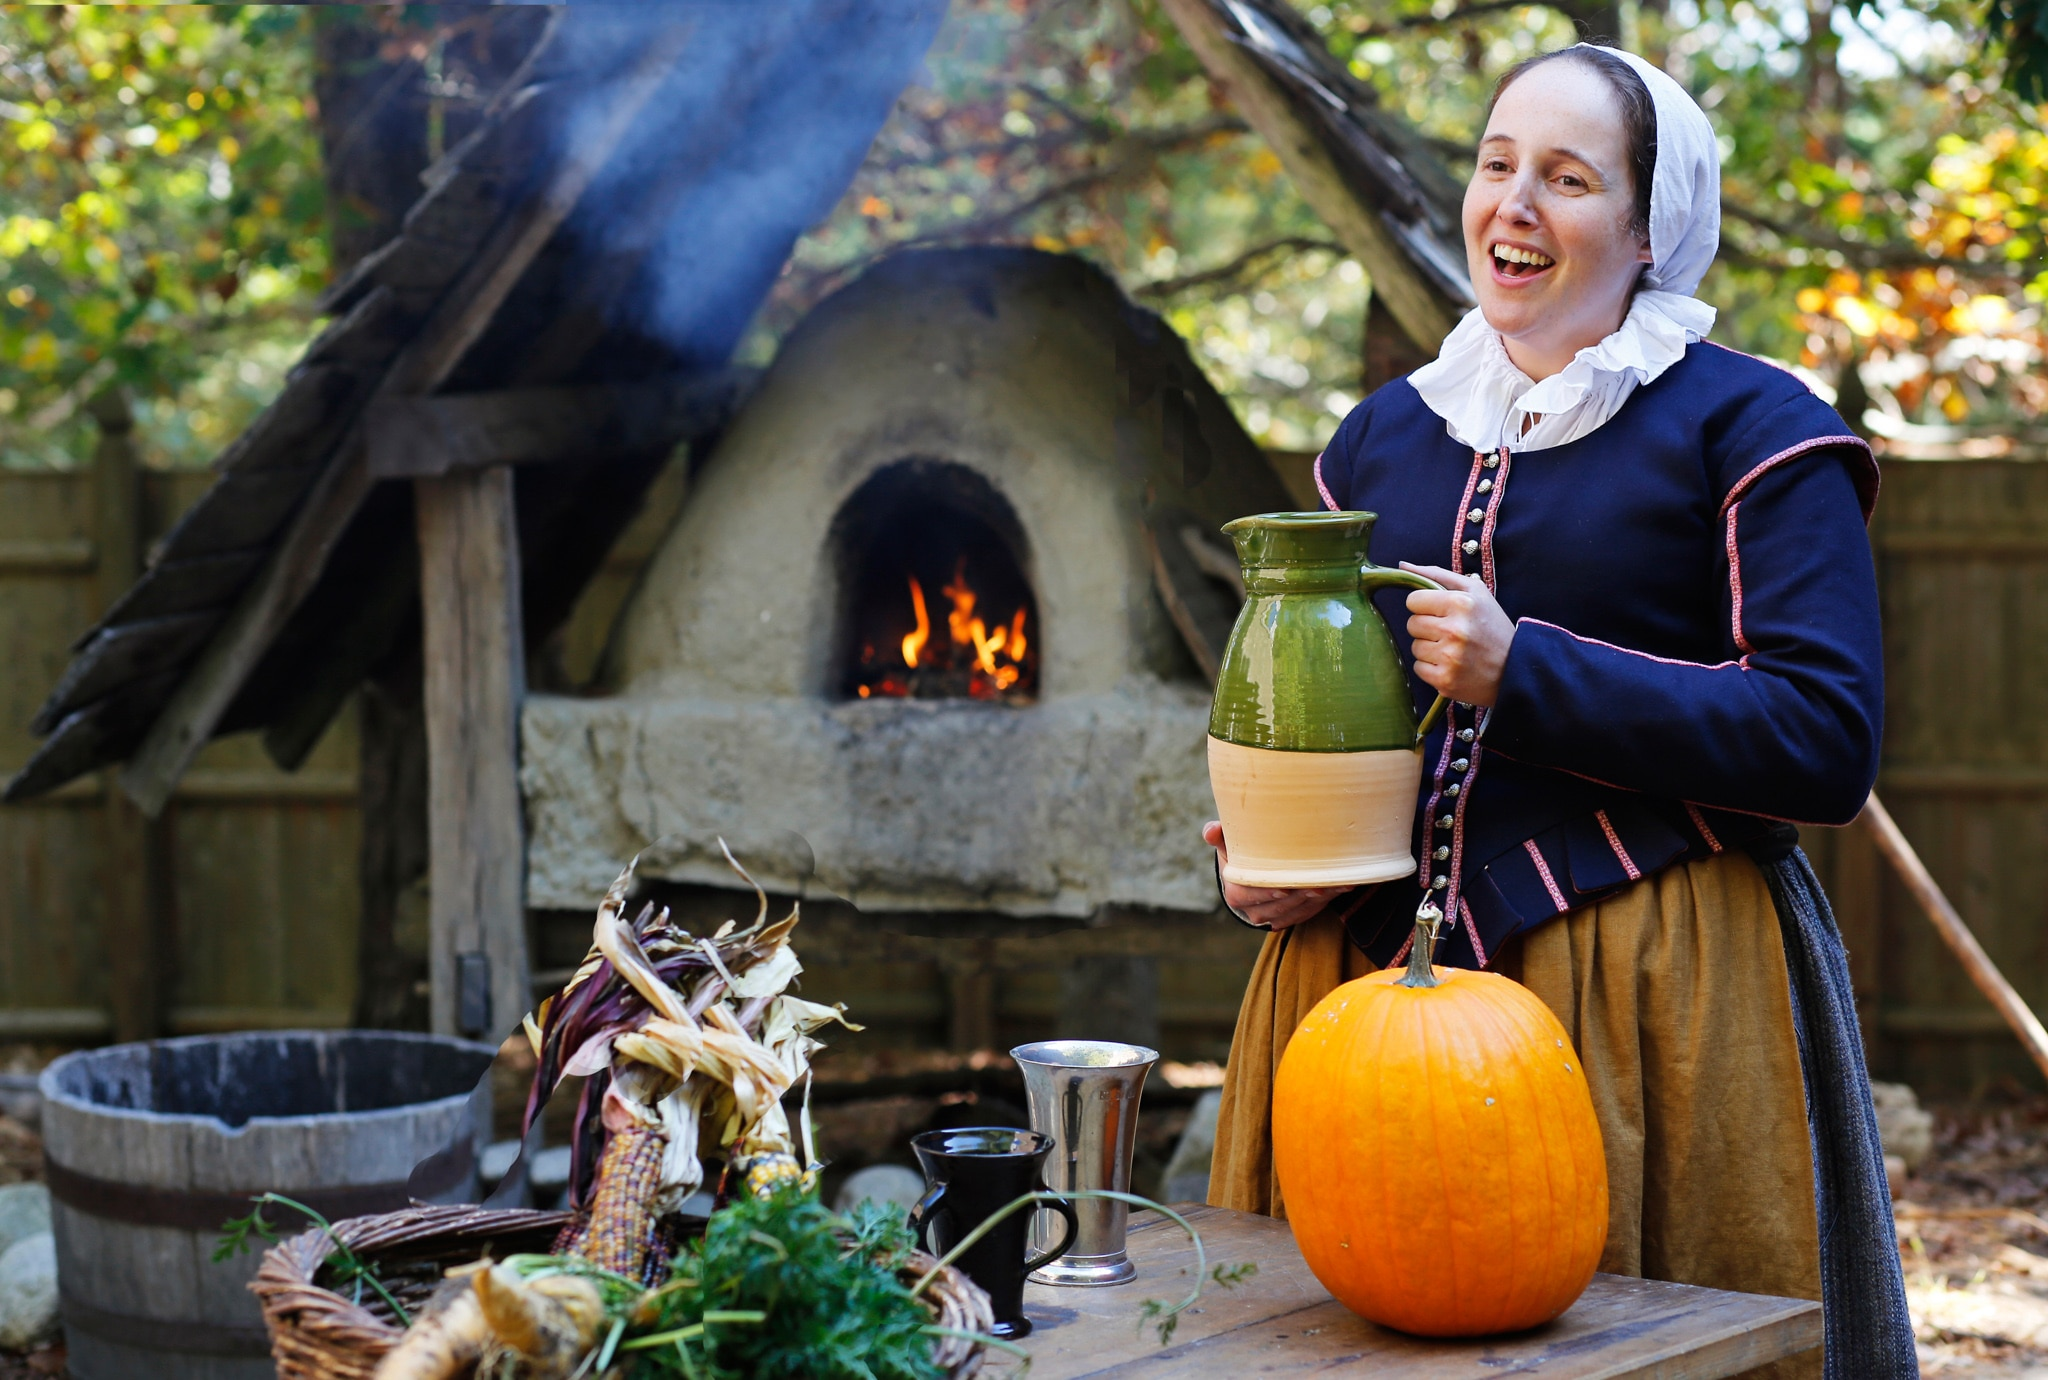 Woman in period costume holding a tankard next to a fire pit (© Plimoth Plantation)